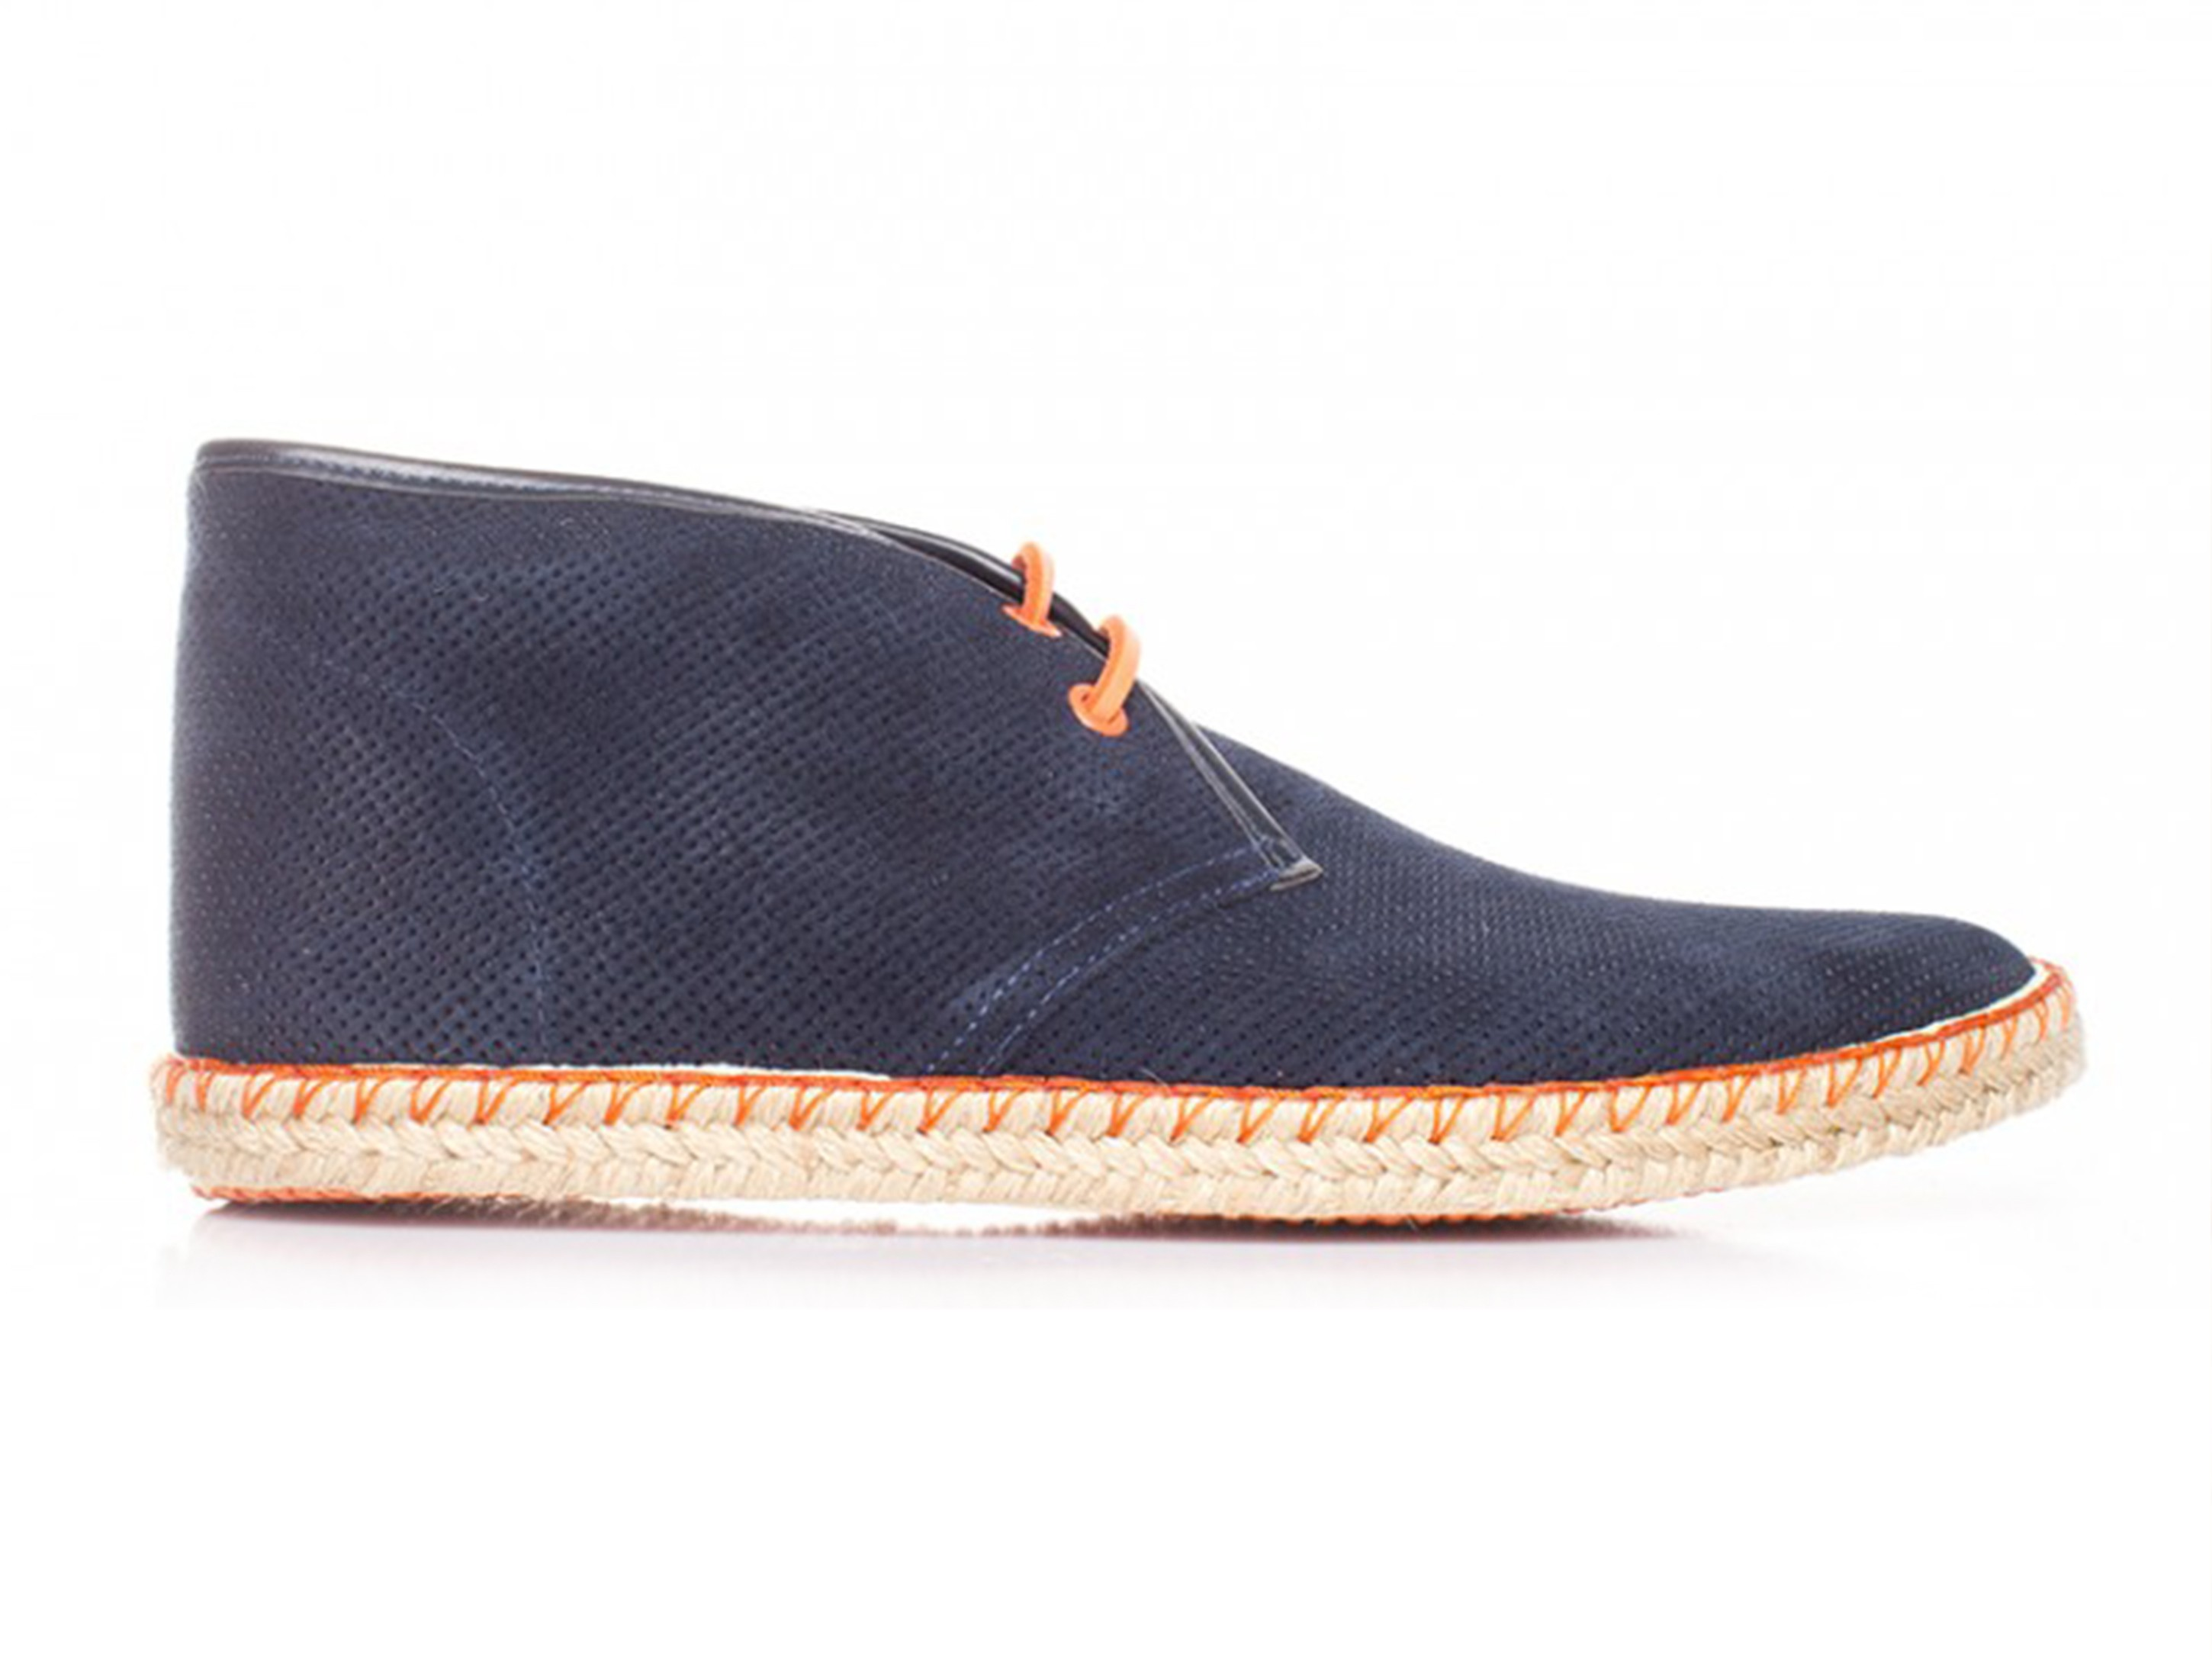 Chaussures à lacets Peter Blade bleues Casual homme